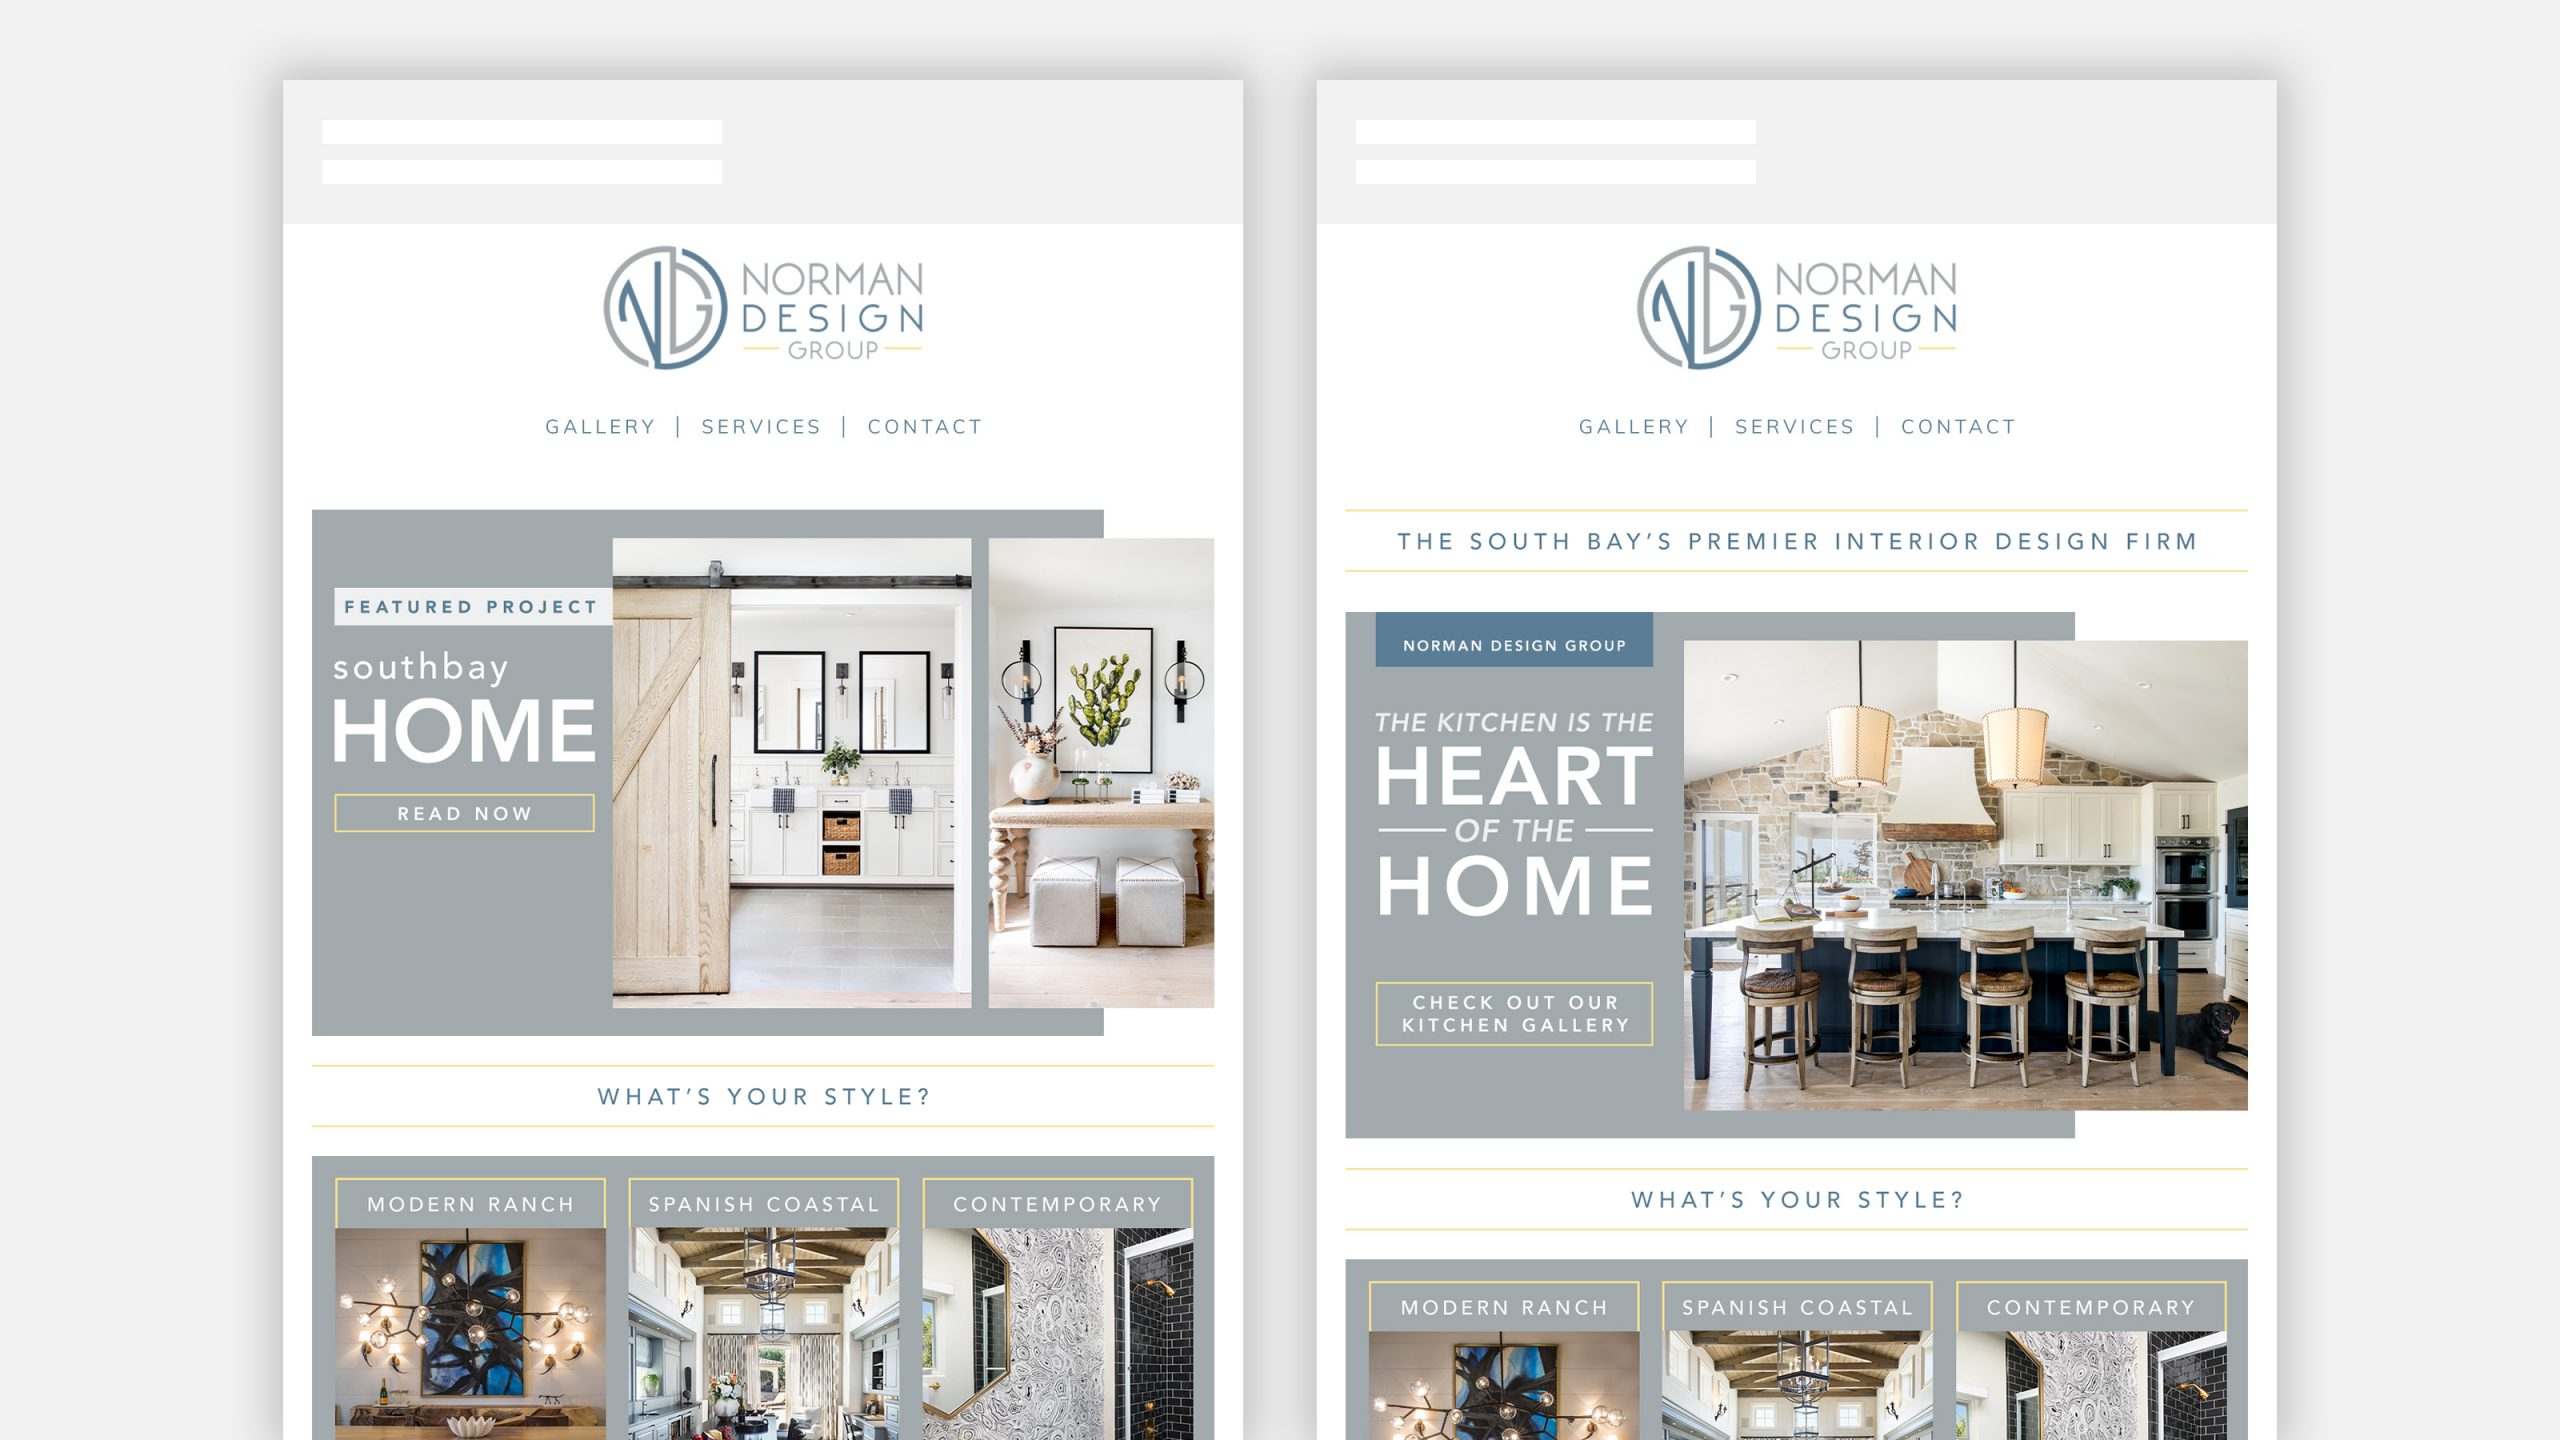 Norman Design Email